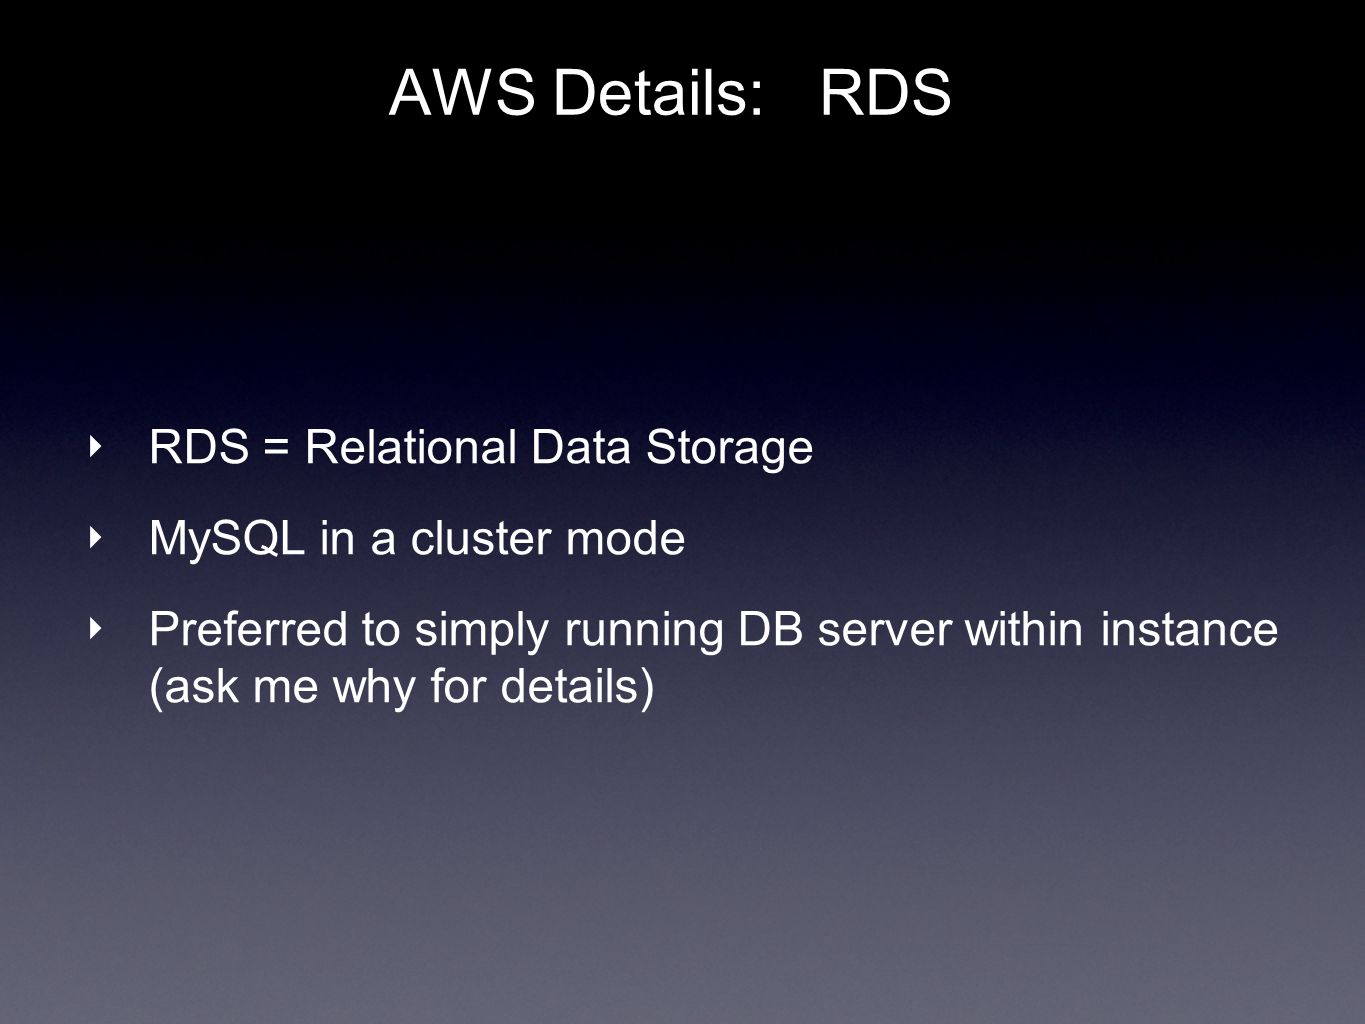 AWS Details: RDS RDS = Relational Data Storage MySQL in a cluster mode Preferred to simply running DB server within instance (ask me why for details)